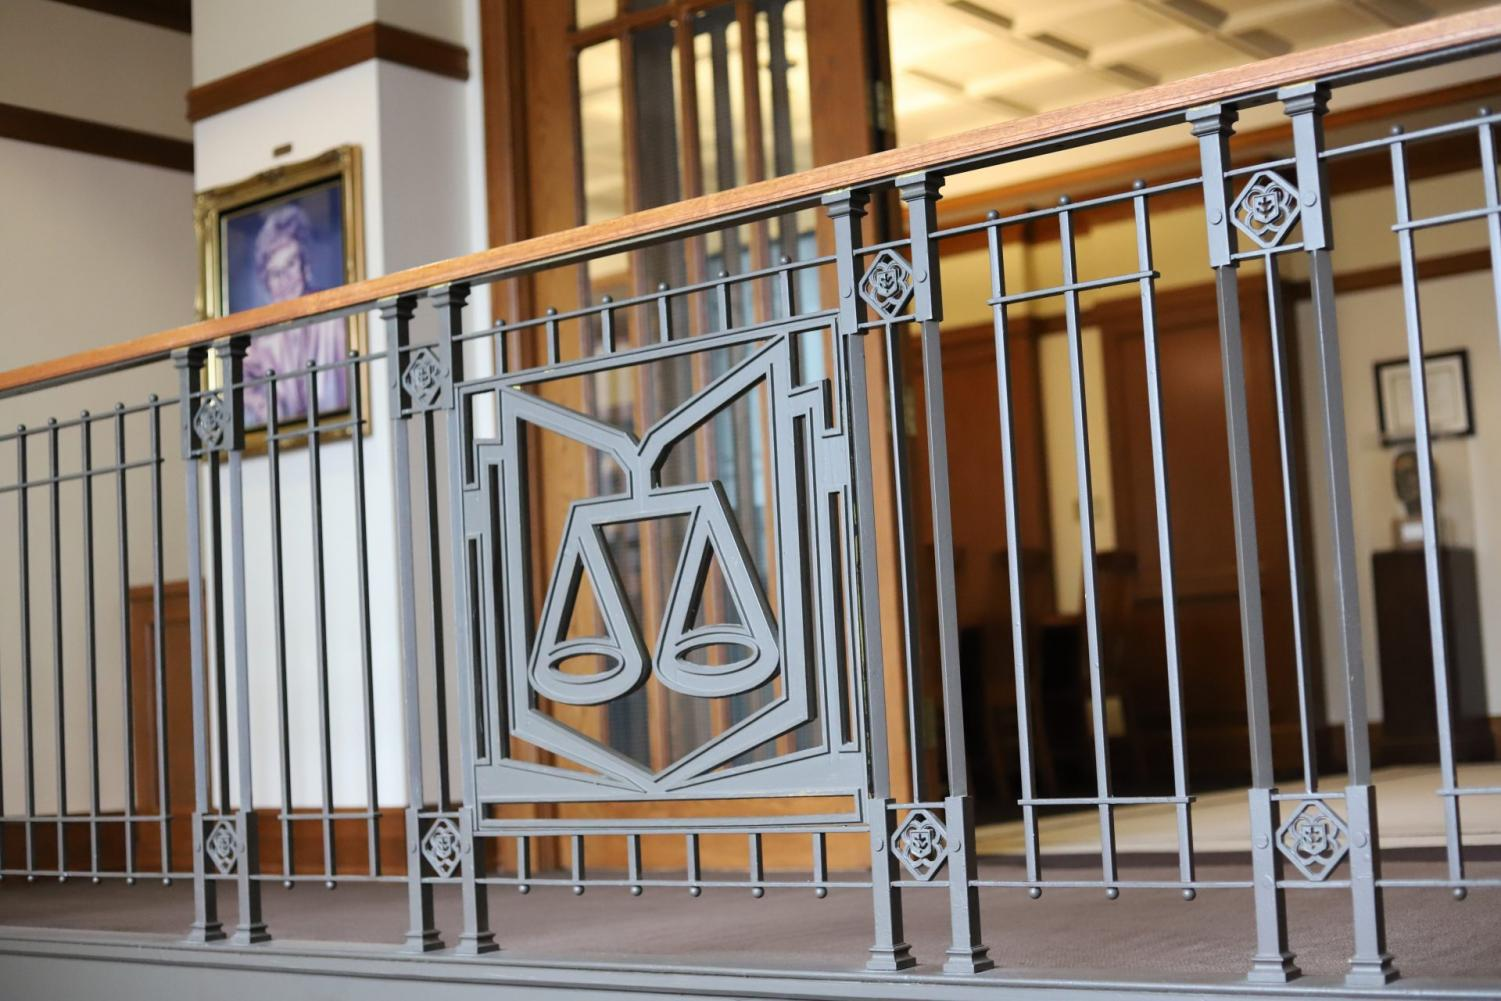 The Law School's library provides a silent haven for students interested in taking the LSAT.